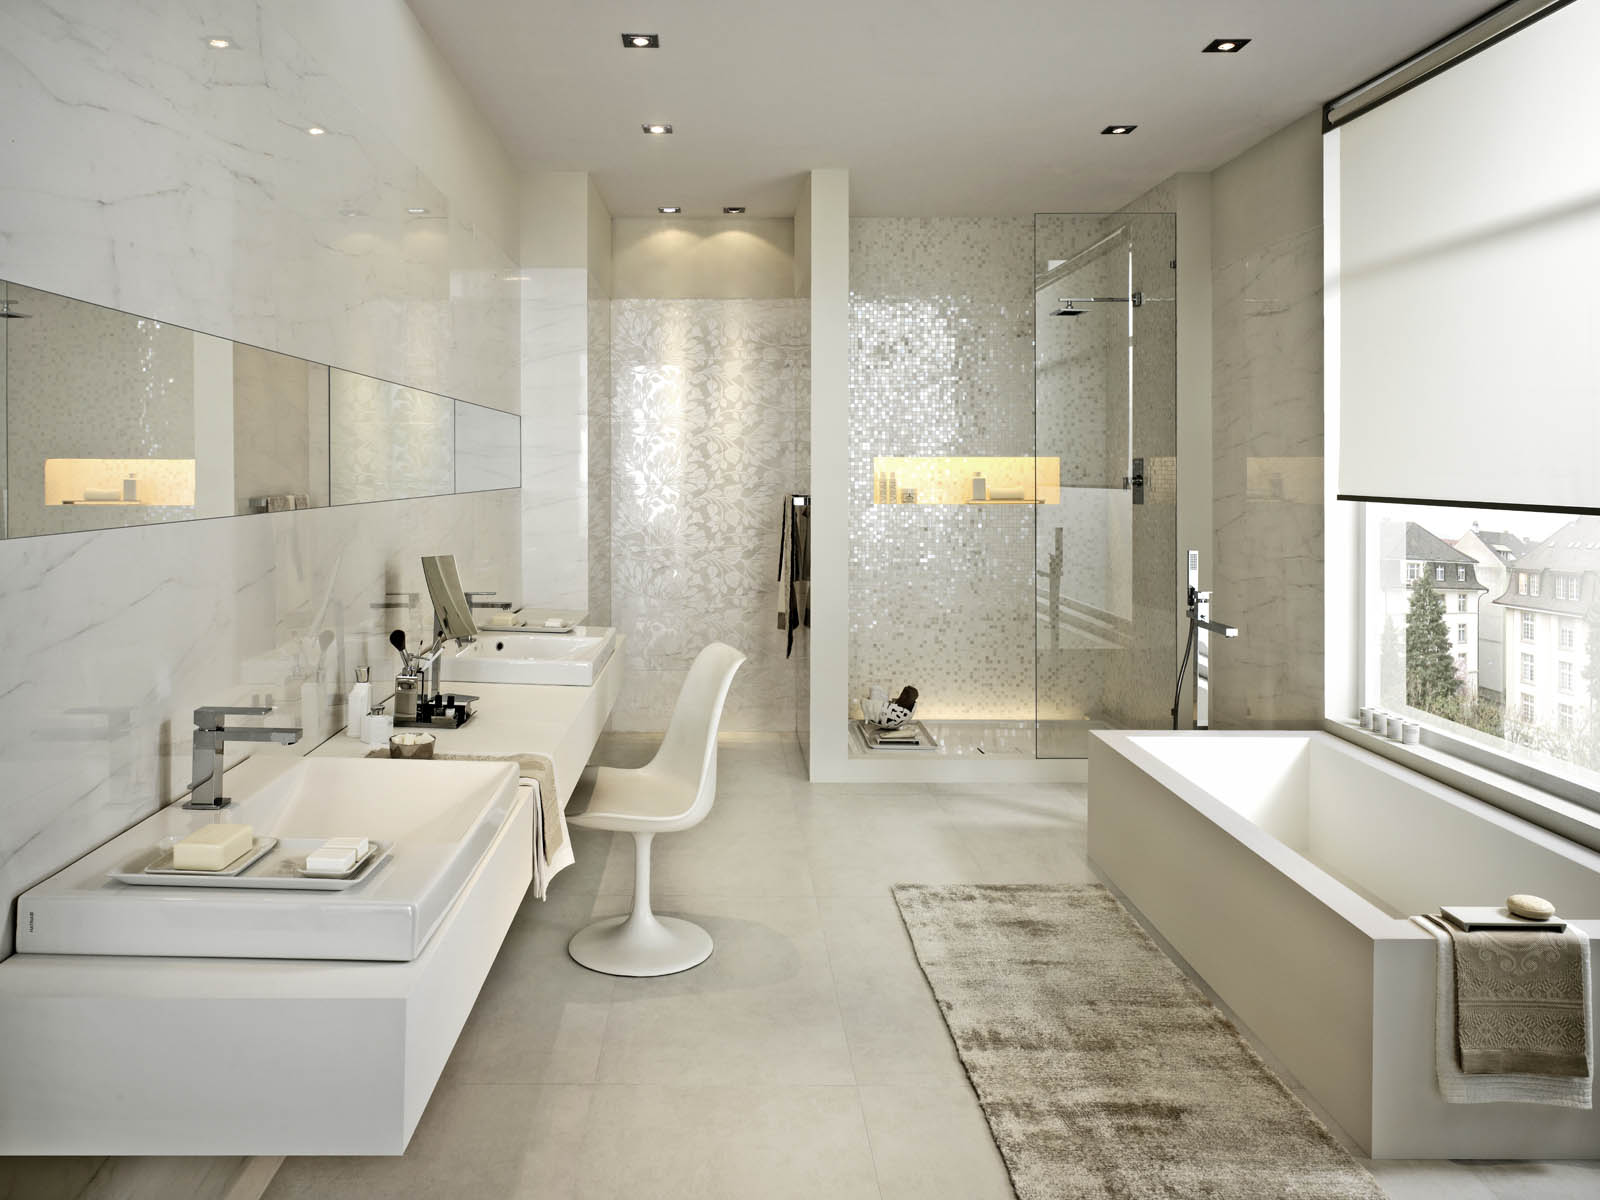 Bathroom flooring ceramic and porcelain stoneware marazzi for Marazzi tile